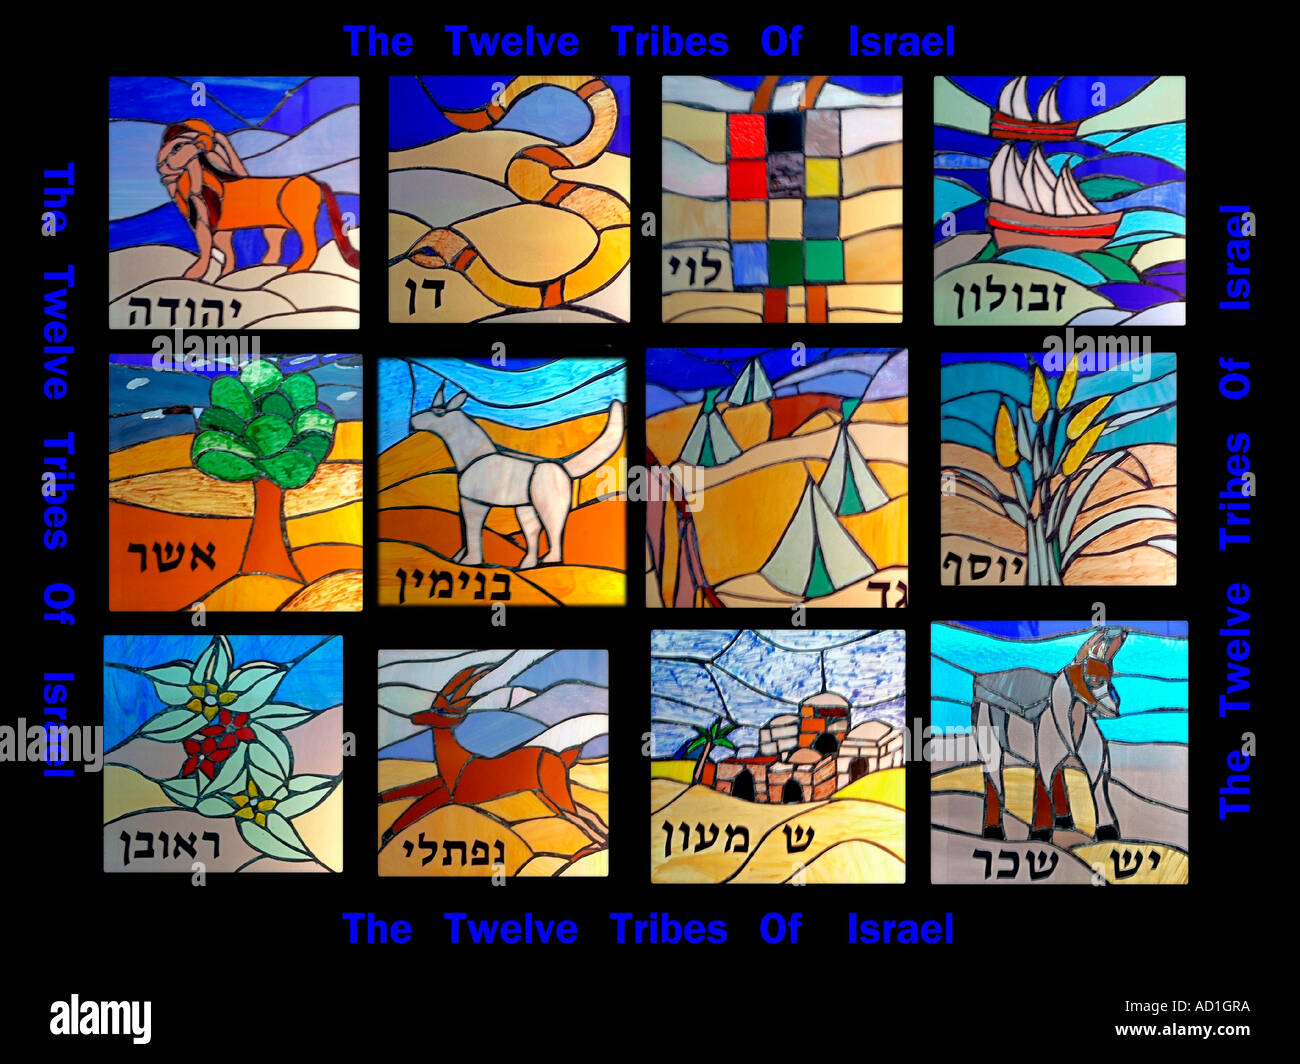 A Collage Of The Twelve Tribes Of Israel Depicted In